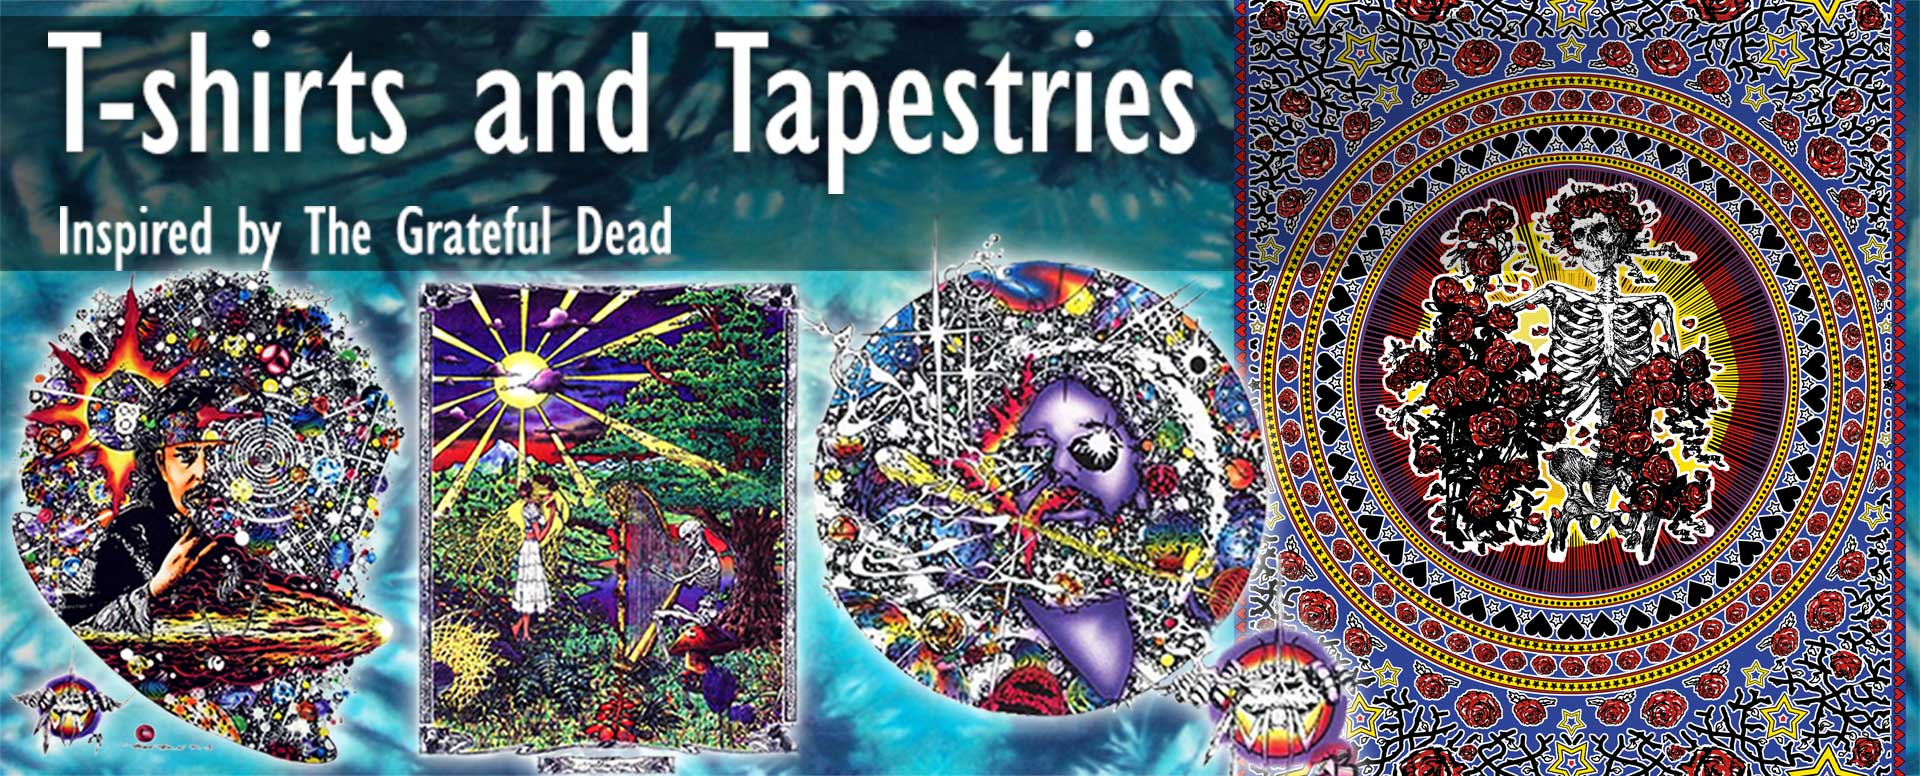 Grateful Dead inspired t-shirts, tank tops tie dyes